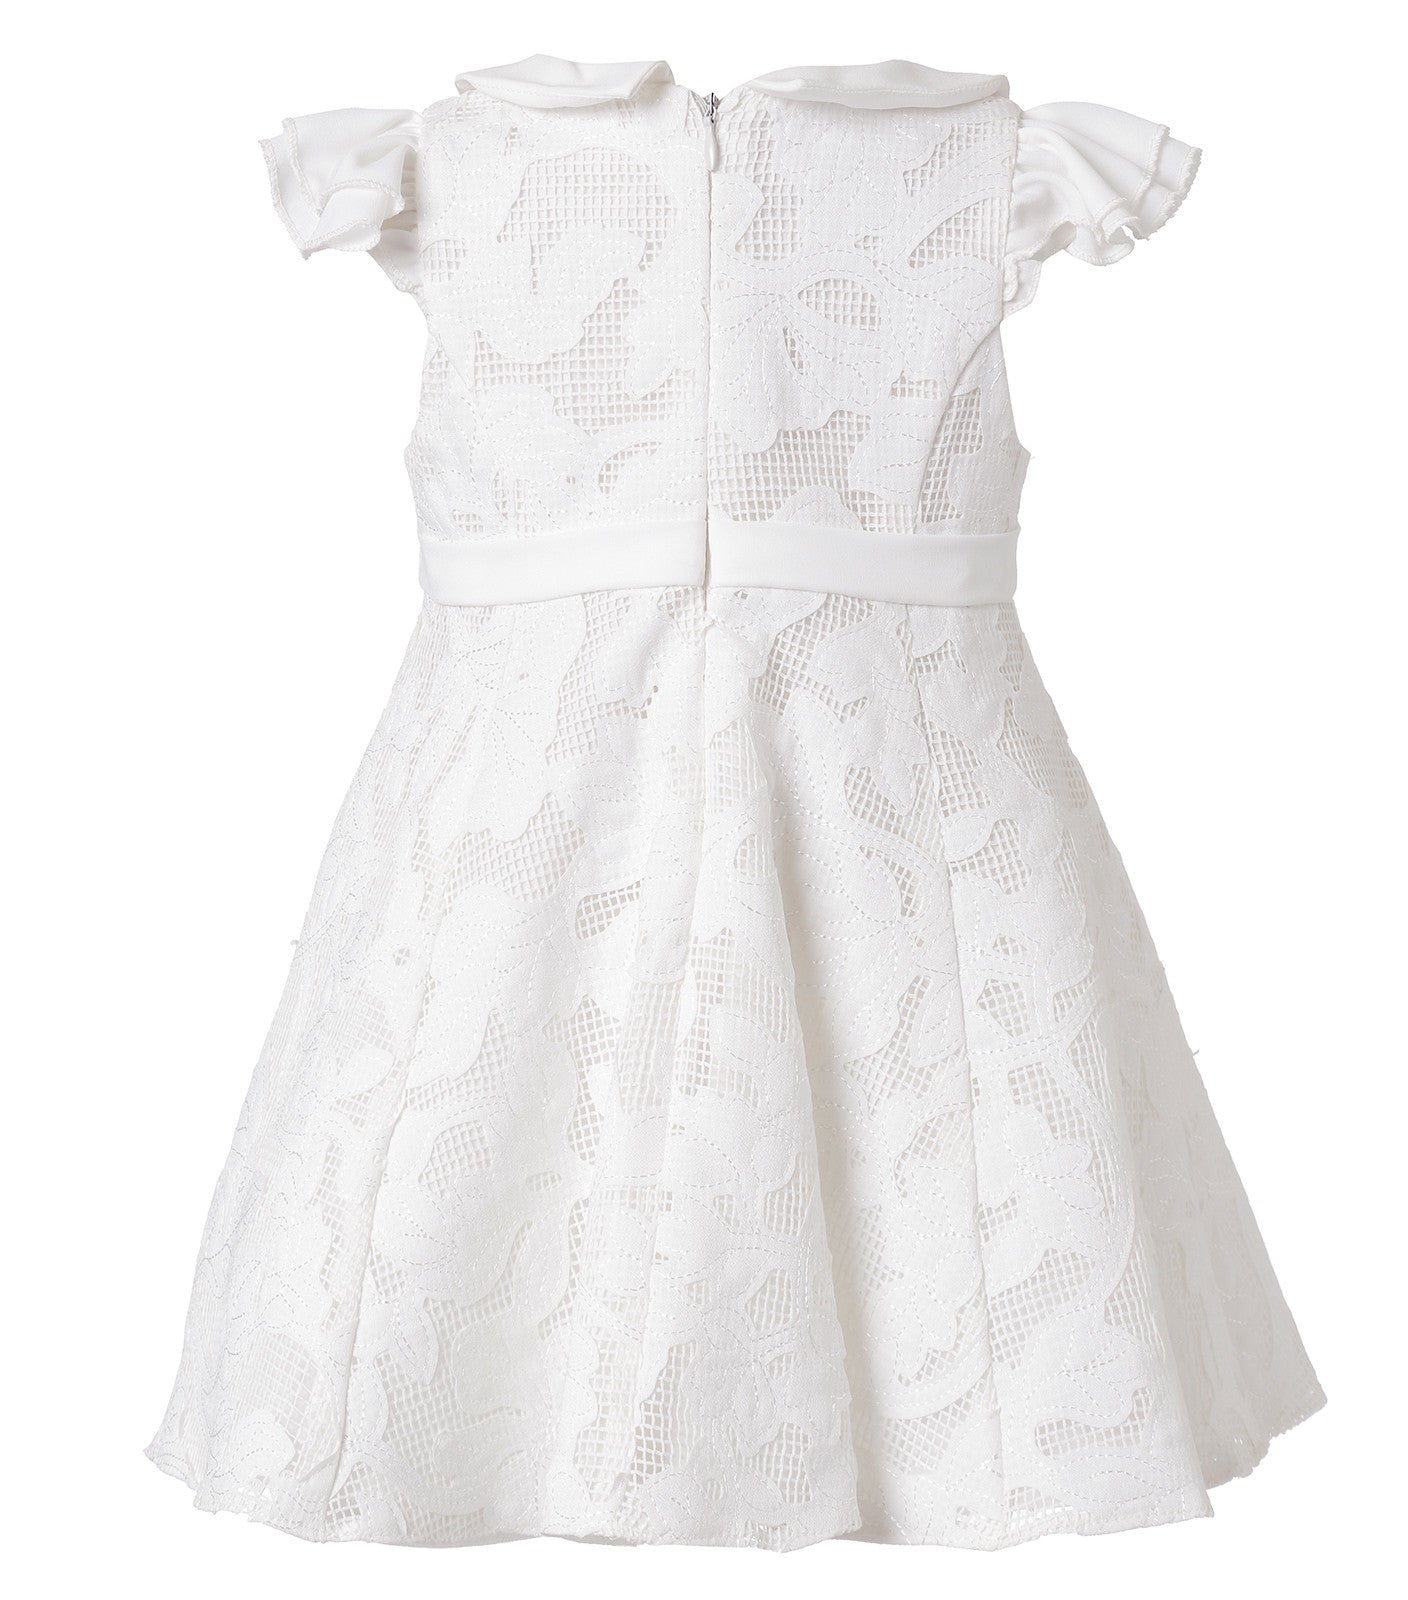 Baby Girl Floral Lace dress